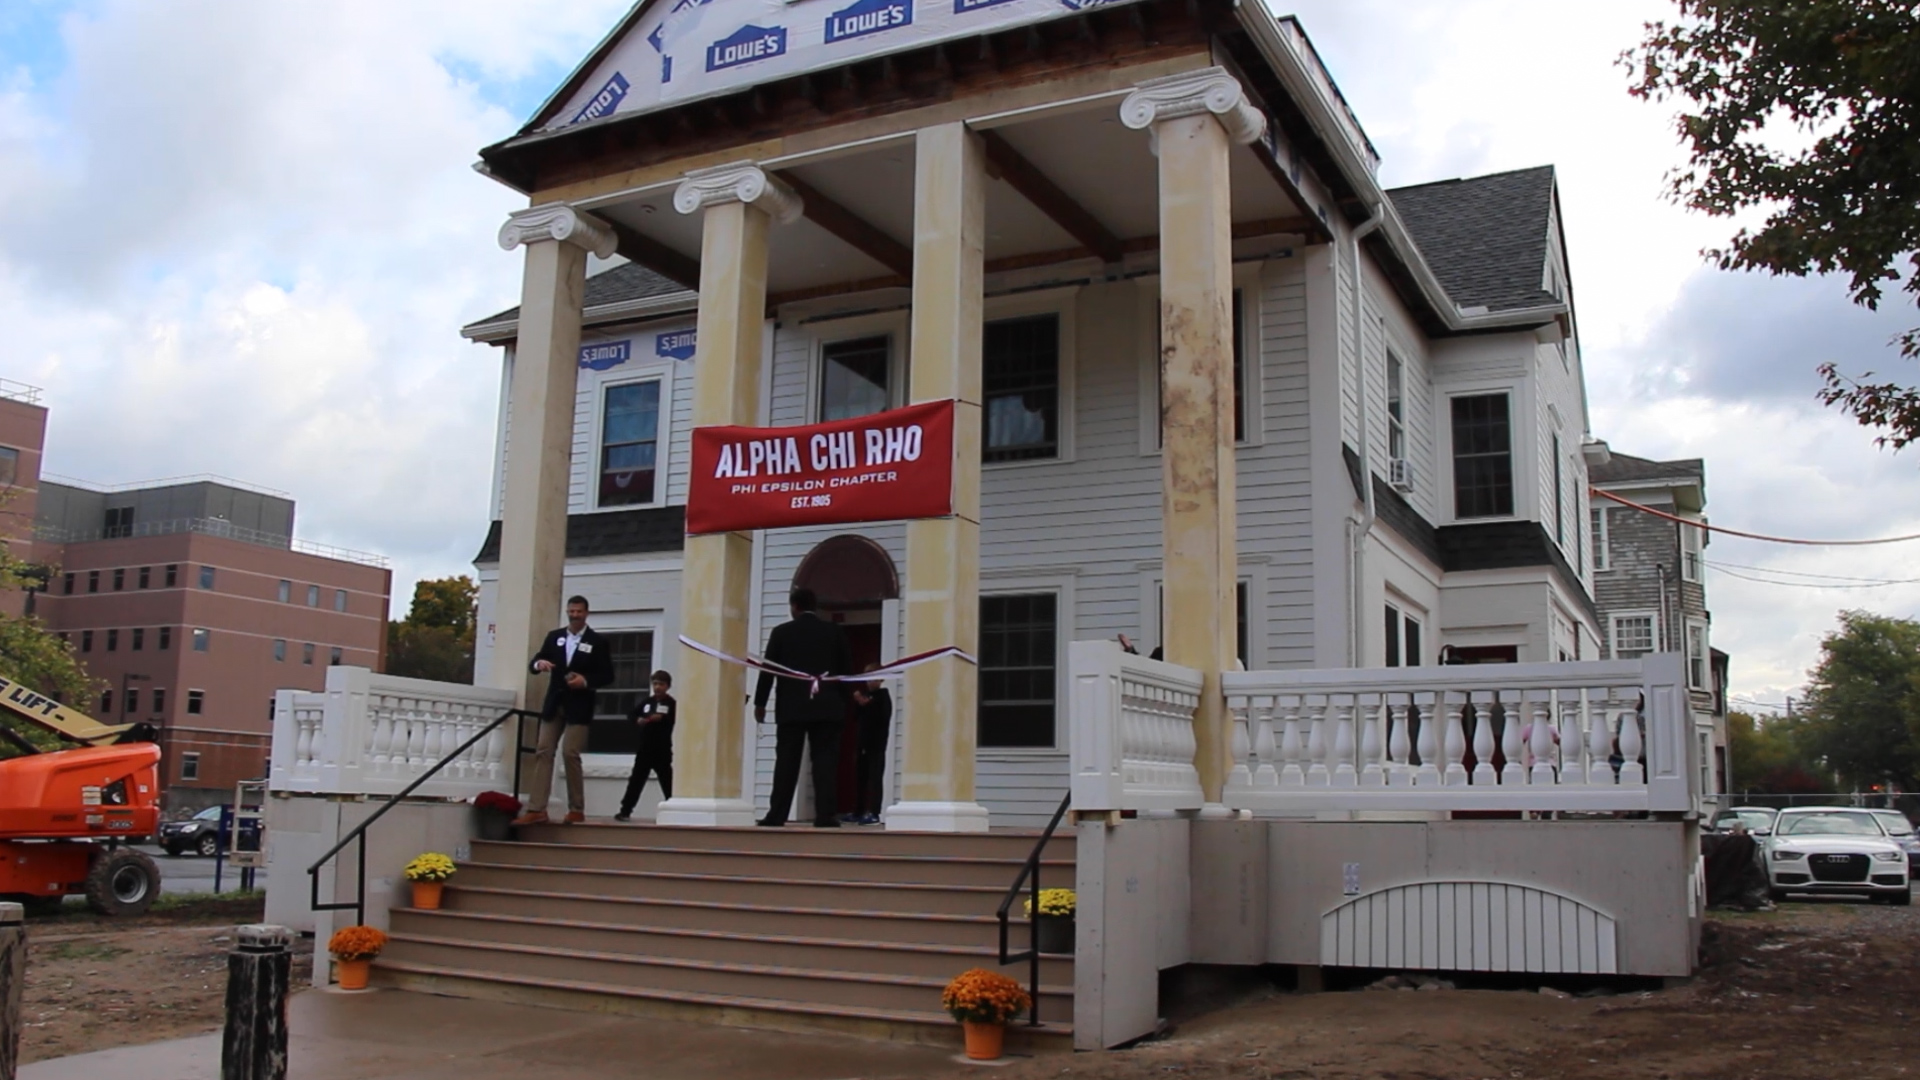 Video: Take a tour of Alpha Chi Rho's renovated fraternity ... on ranch house plans, most popular one story house plans, complete set of house plans, cottage house plans, easiest to build house plans, cape cod house plans, home depot modular house plans, amazon house plans, do it best house plans, low pitch roof house plans, sutherland's house plans, single story 30x40 house plans, parisian house plans, coach house plans, small house plans, mediterranean house plans, one story craftsman bungalow house plans, two bedroom 2 bath house plans, 1970s tri-level house plans, budget house plans,